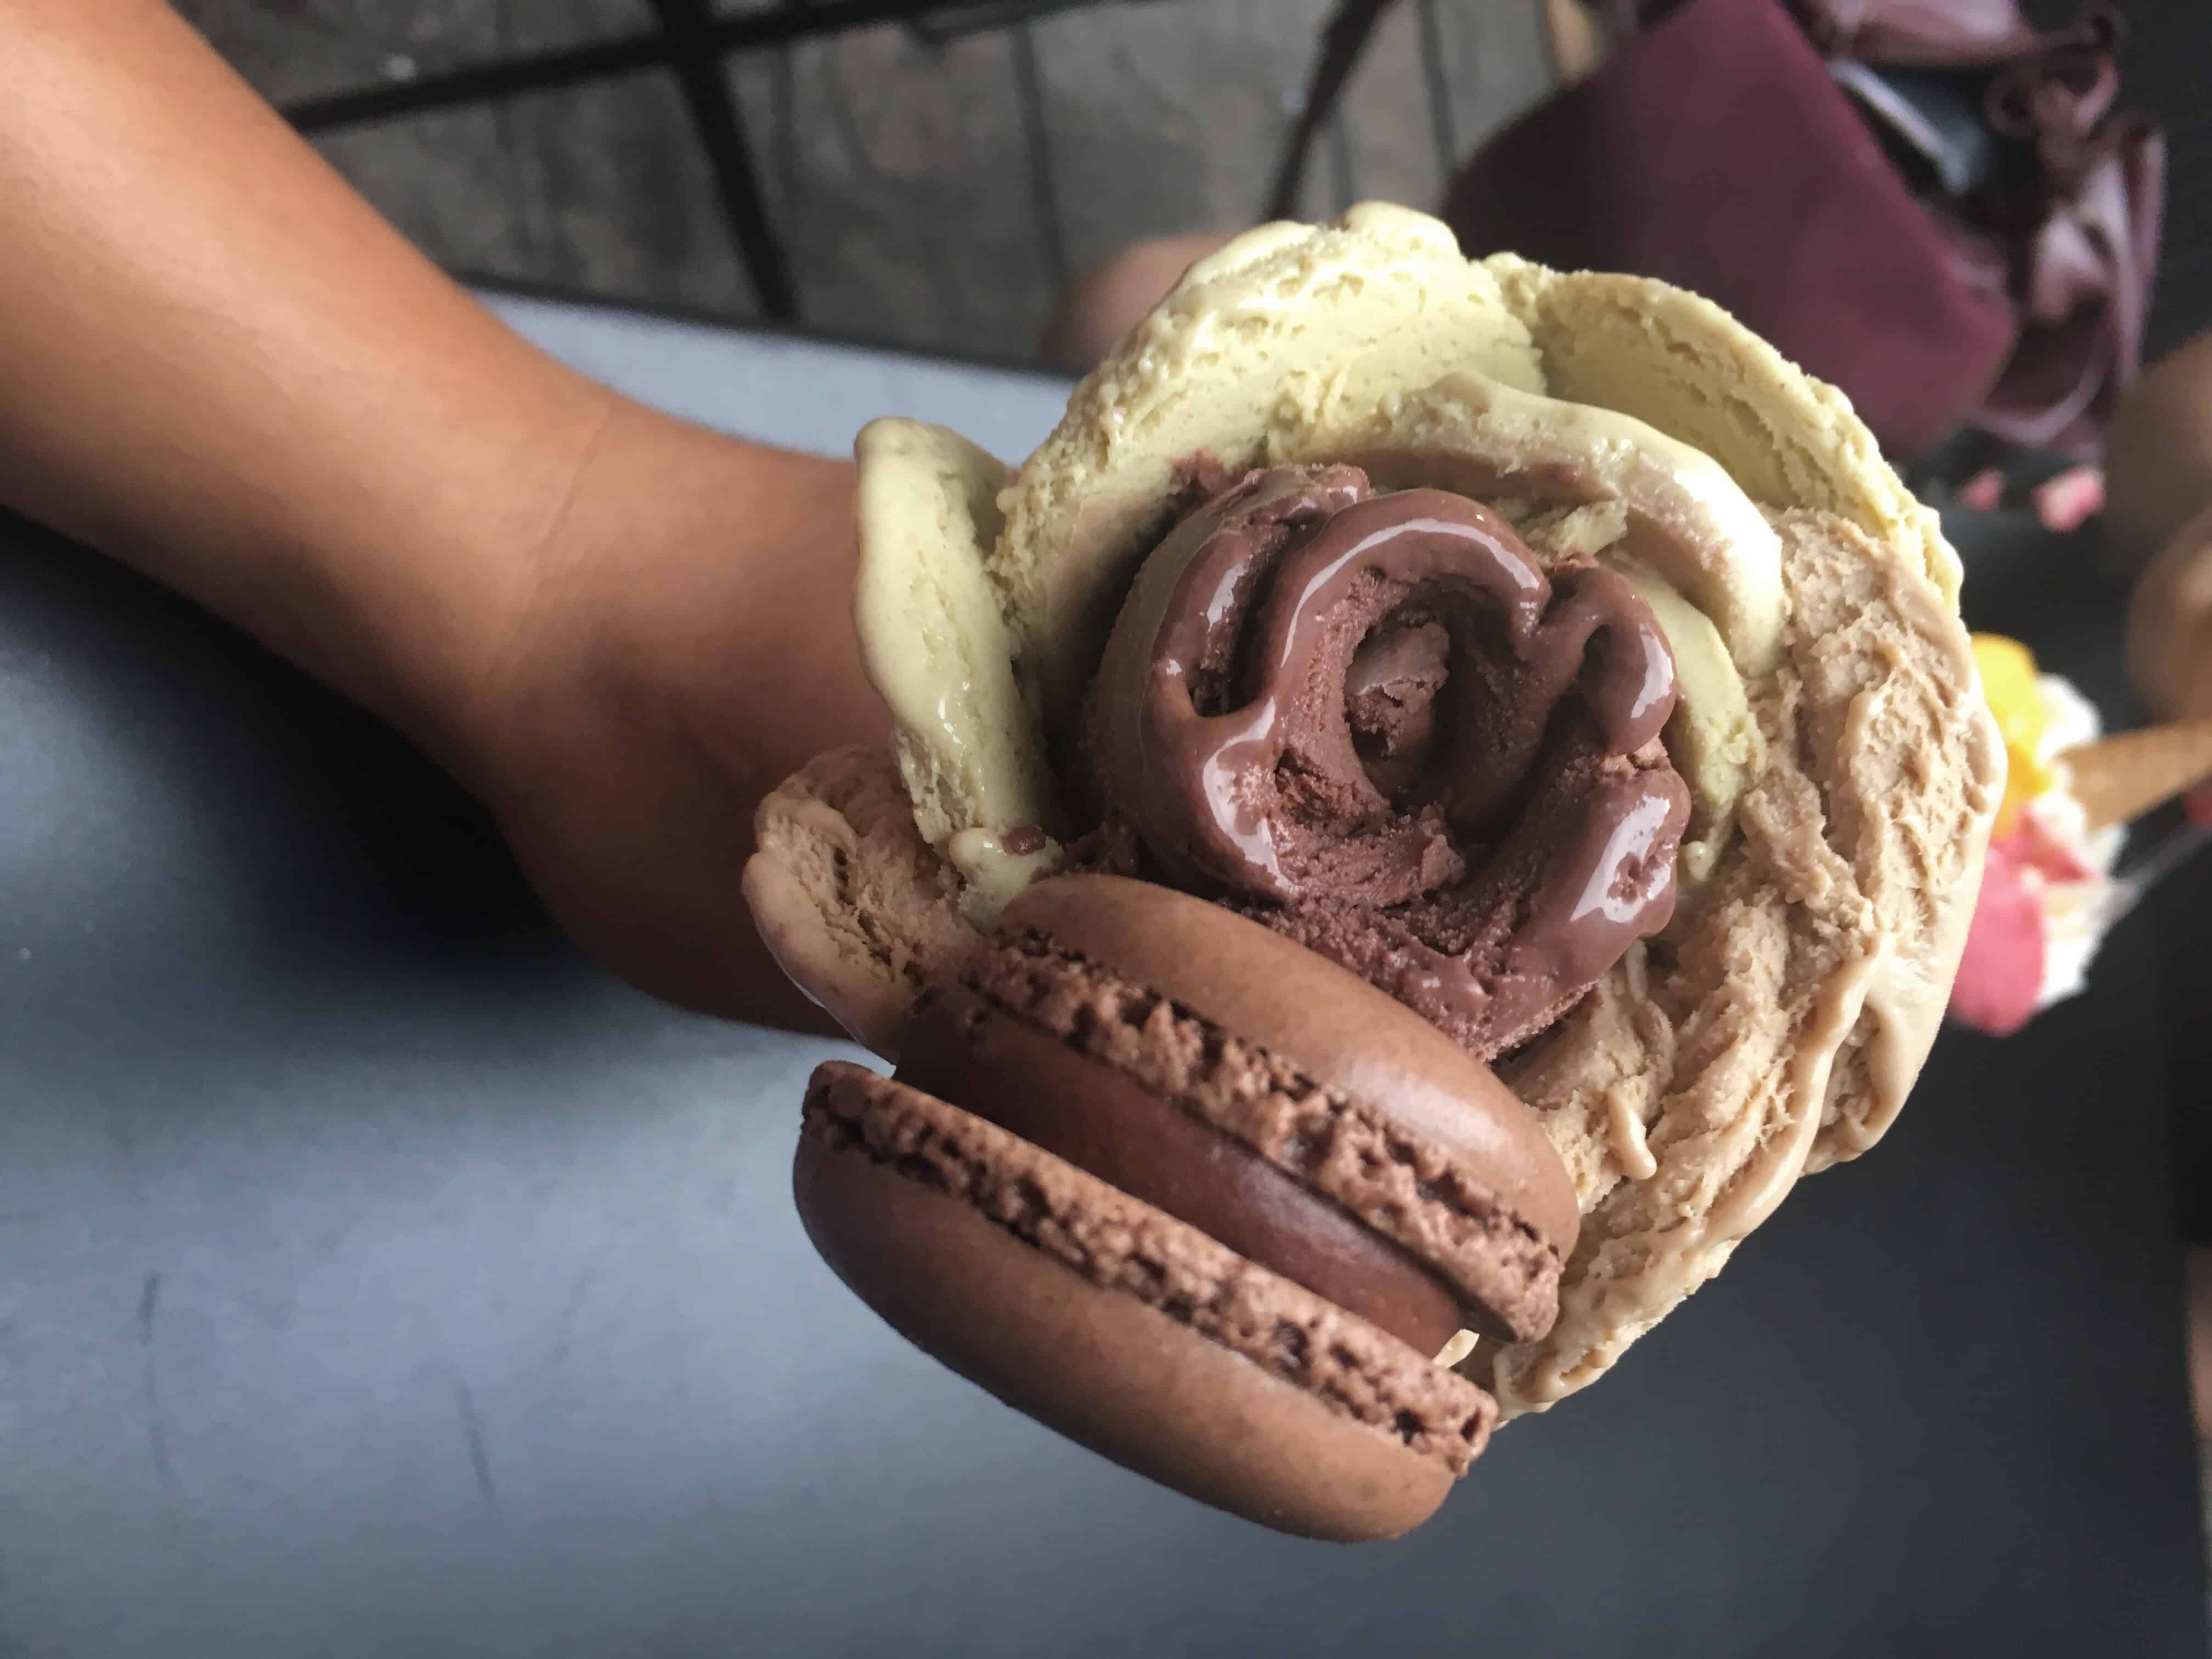 Gelato with a macaron from Amorino